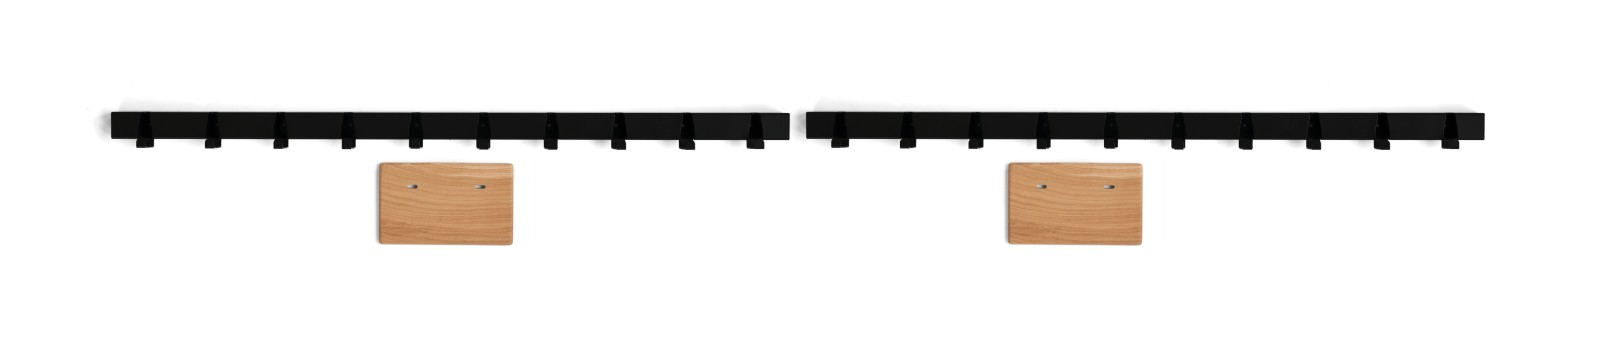 Coatrack by the Meter set 'bedroom' in black